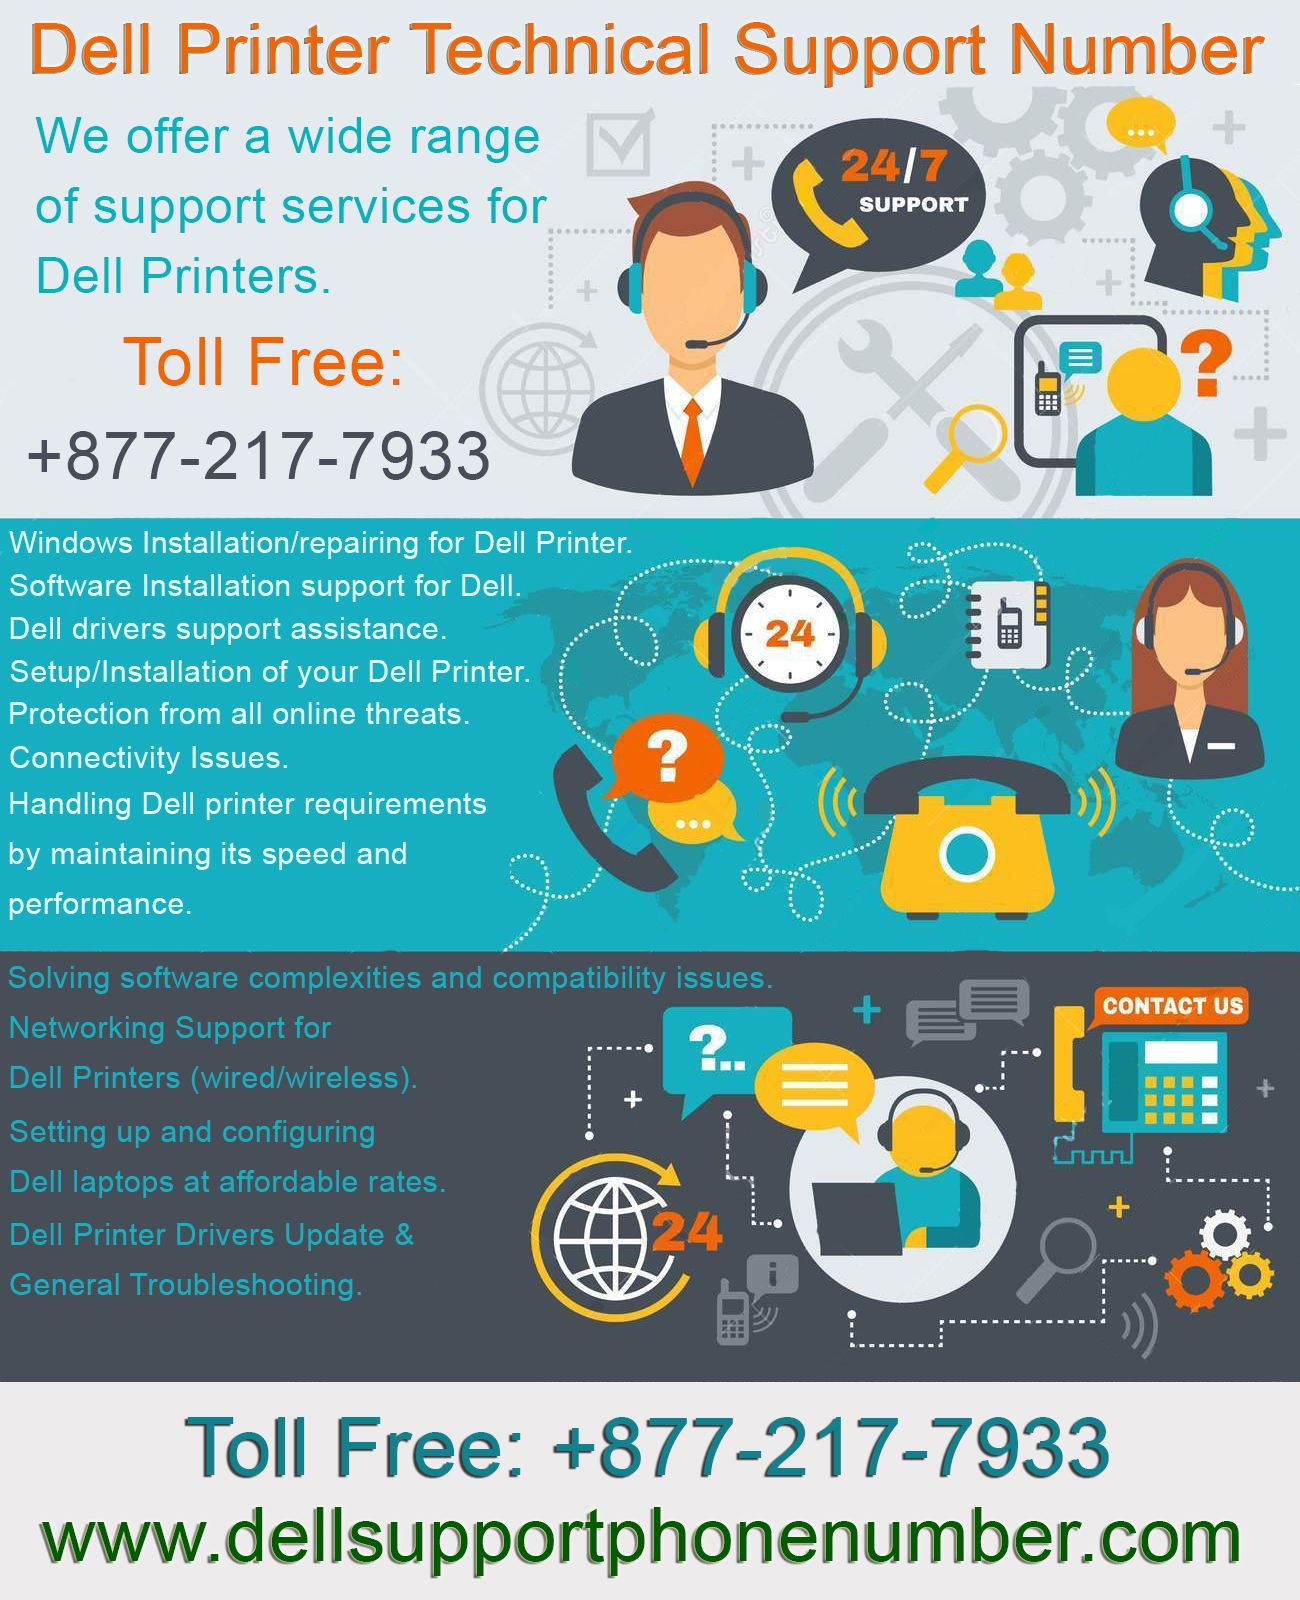 1-877-217-7933 Dell Help Phone Number Are you experiencing technical errors related to Dell products such as PC Desktop, Laptop, printer, scanner and Tablets? Call us immediately on Dell tech Support Phone Number at toll free 1-877-217-7933. Look here